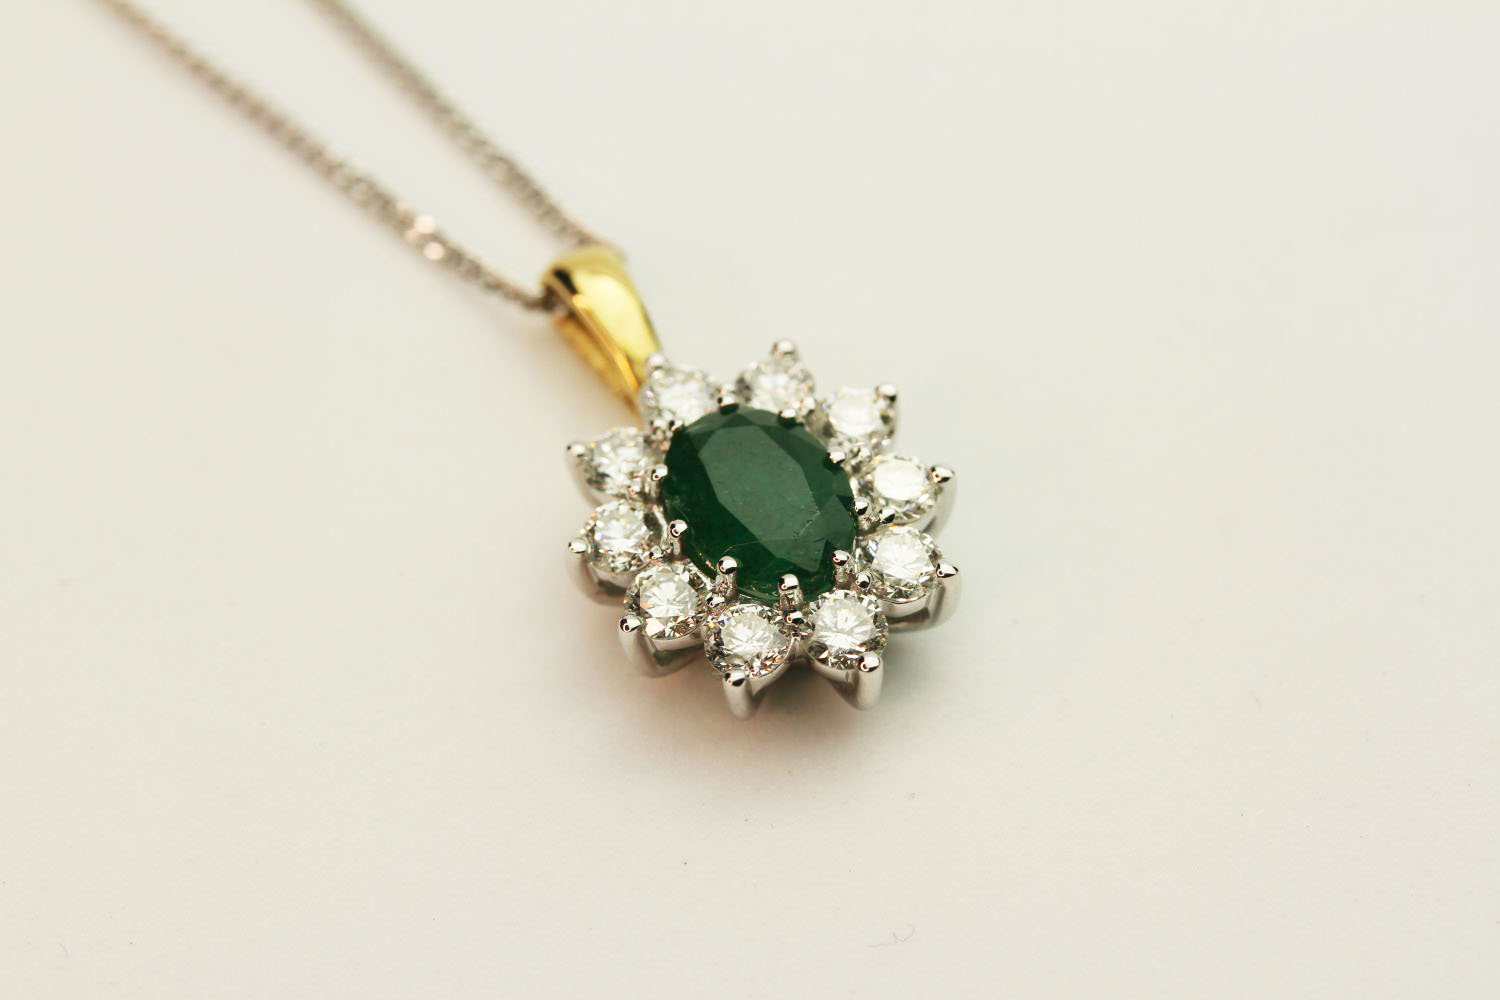 18ct white and yellow gold oval emerald and diamond cluster pendant on a silver chain, boxed.